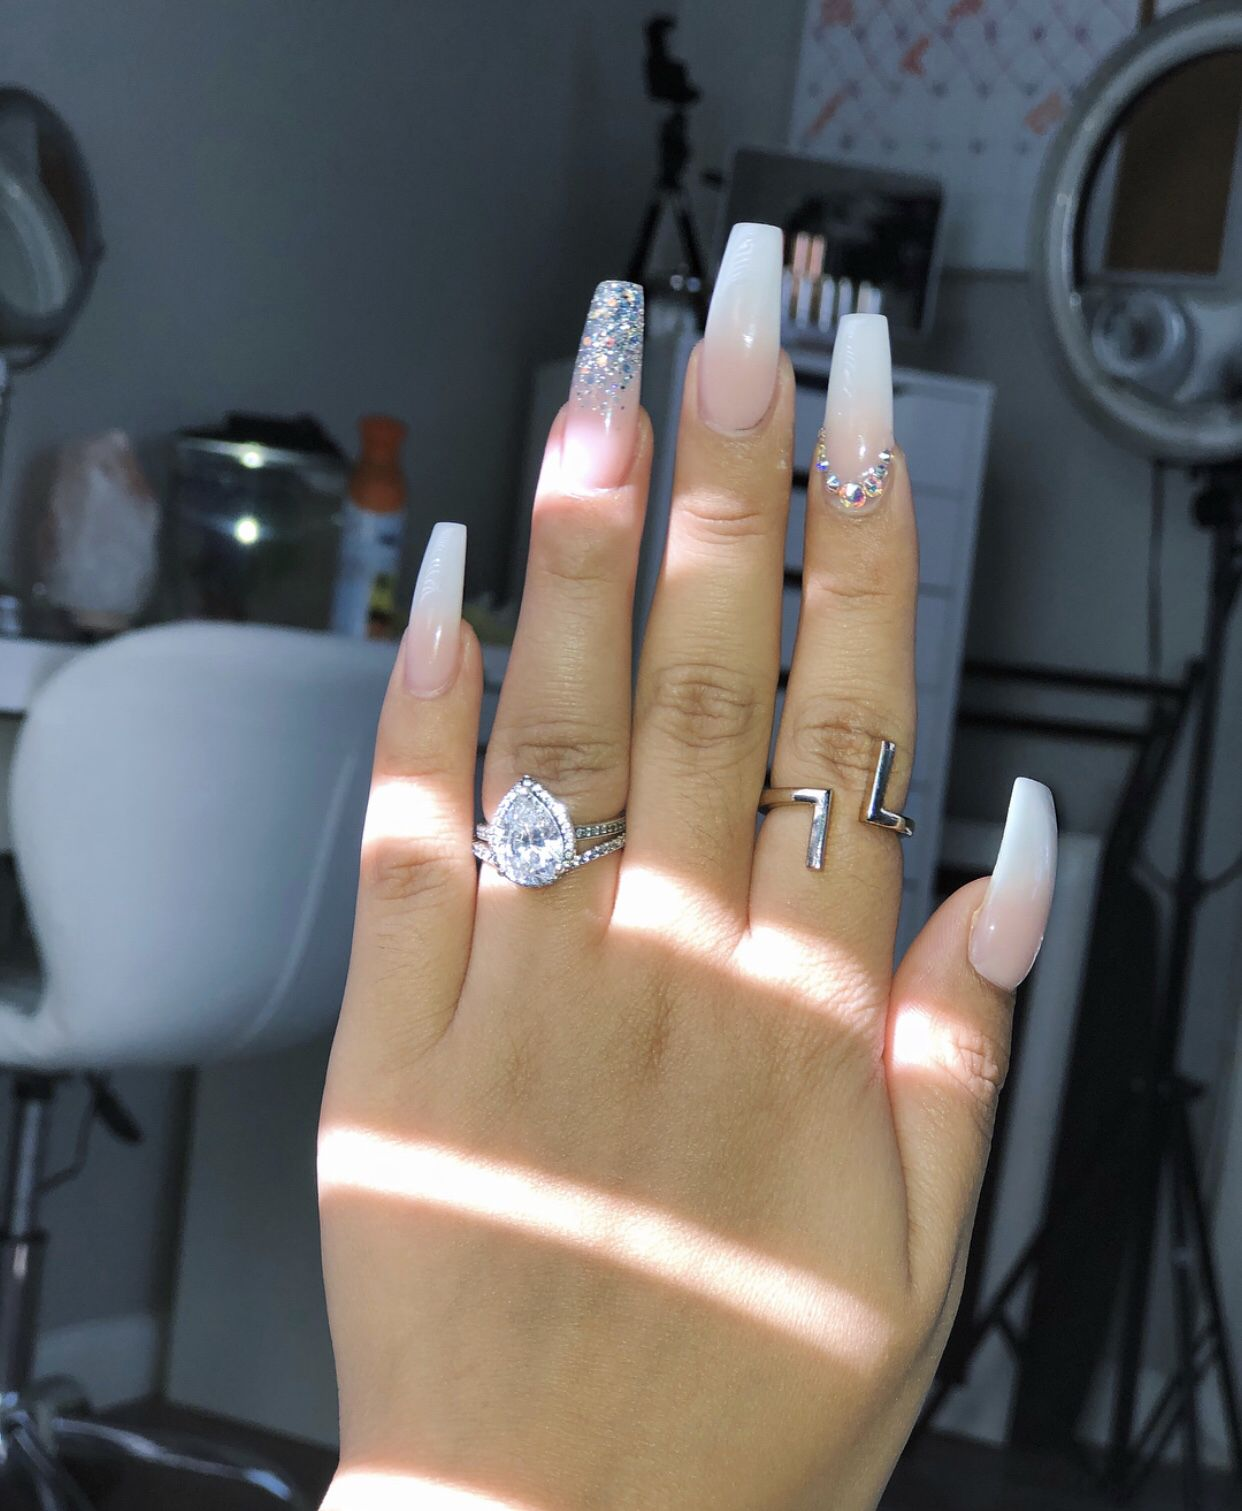 Pinterest Ig Shaylarodneyy Gorgeous Nails Coffin Nails Designs Cute Acrylic Nails